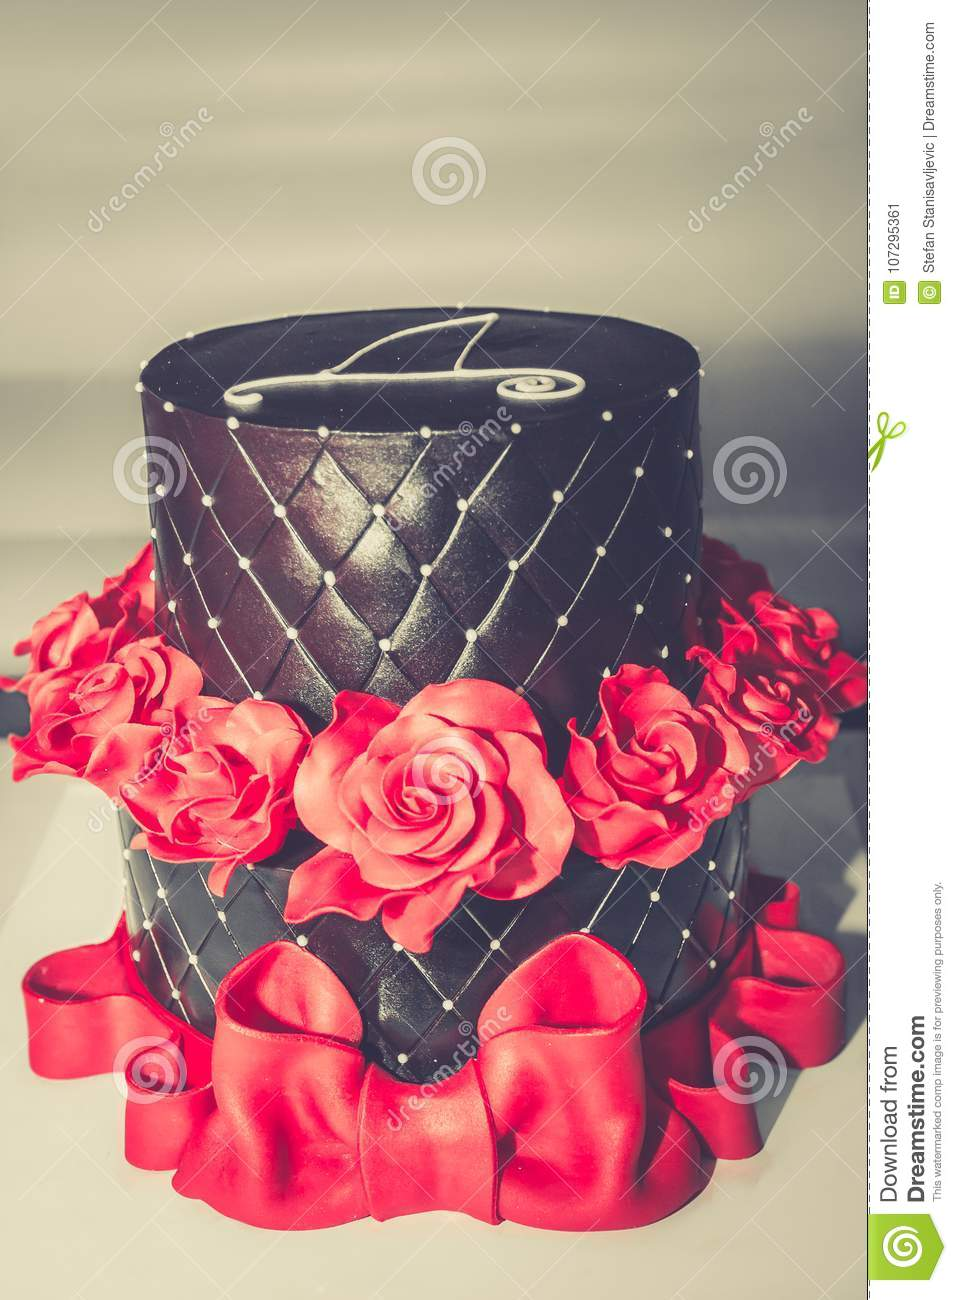 chocolate birthday cake with red roses big red ribbon and cyrillic letter d on the top copy space